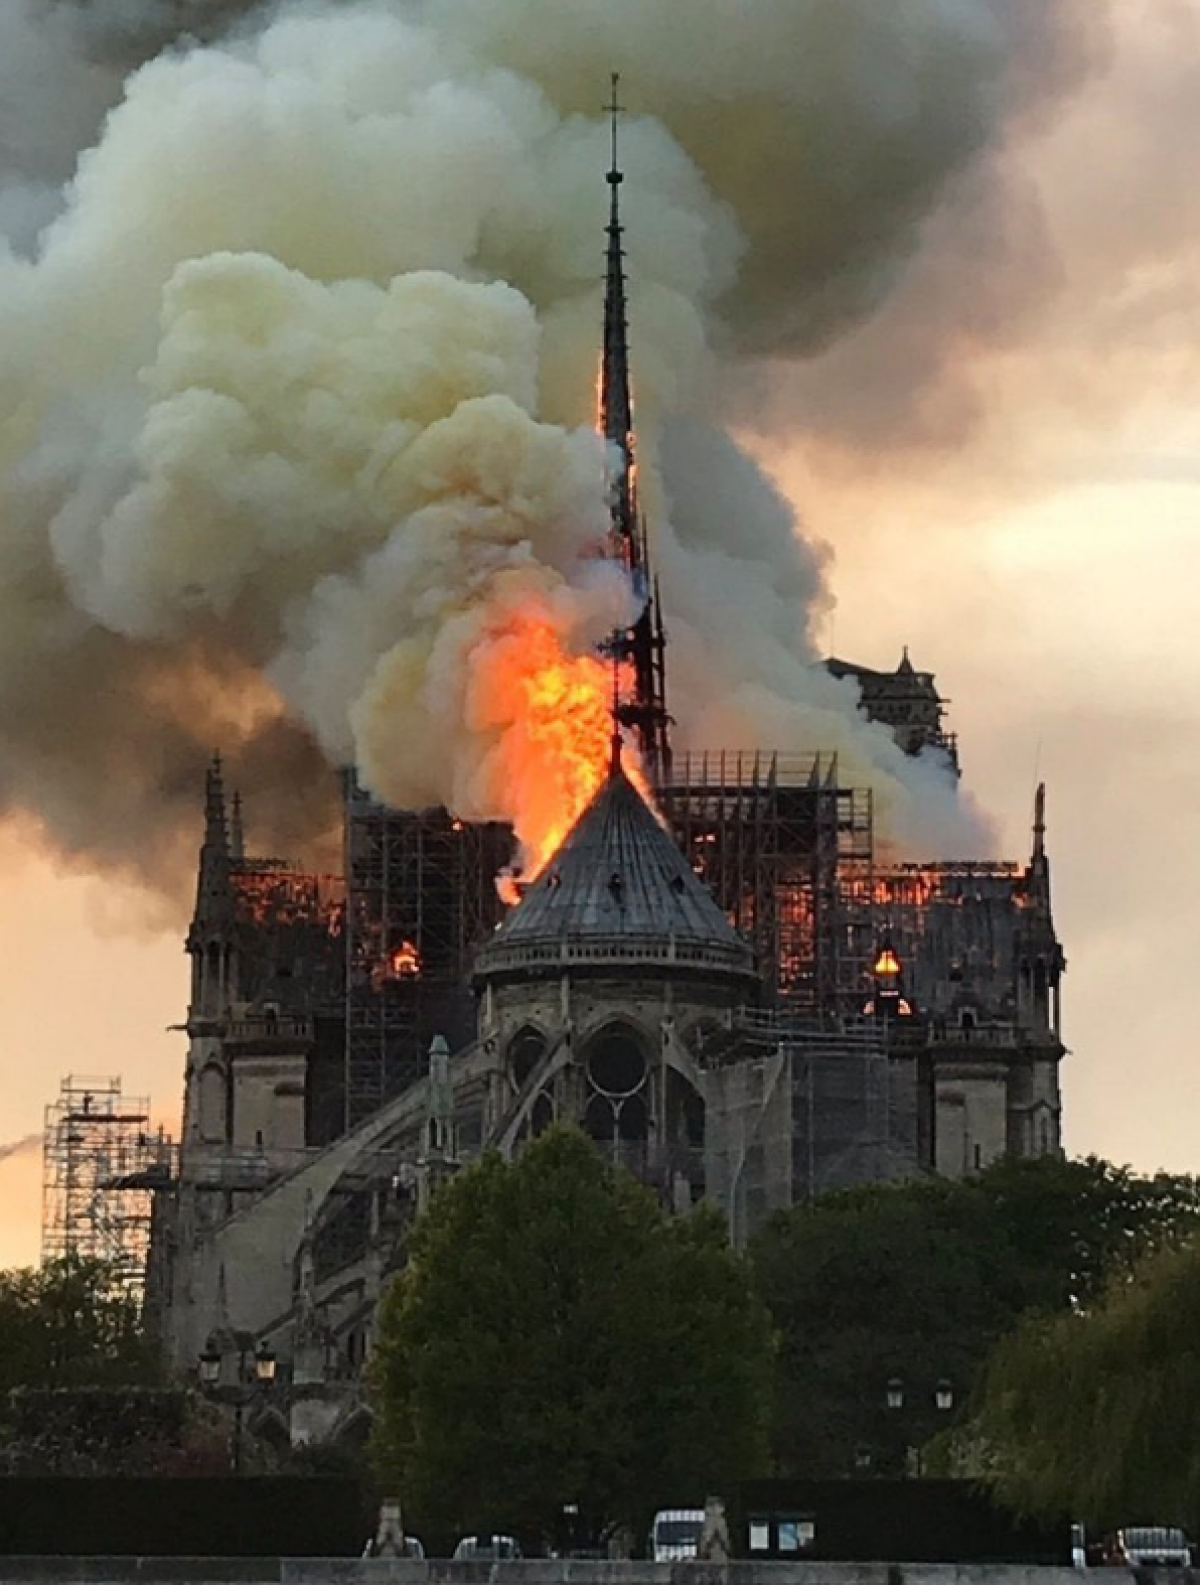 La Belle Notre Dame notre dame fire 1 notre dame Notre Dame: the Story of the Lady of Paris notre dame fire 1